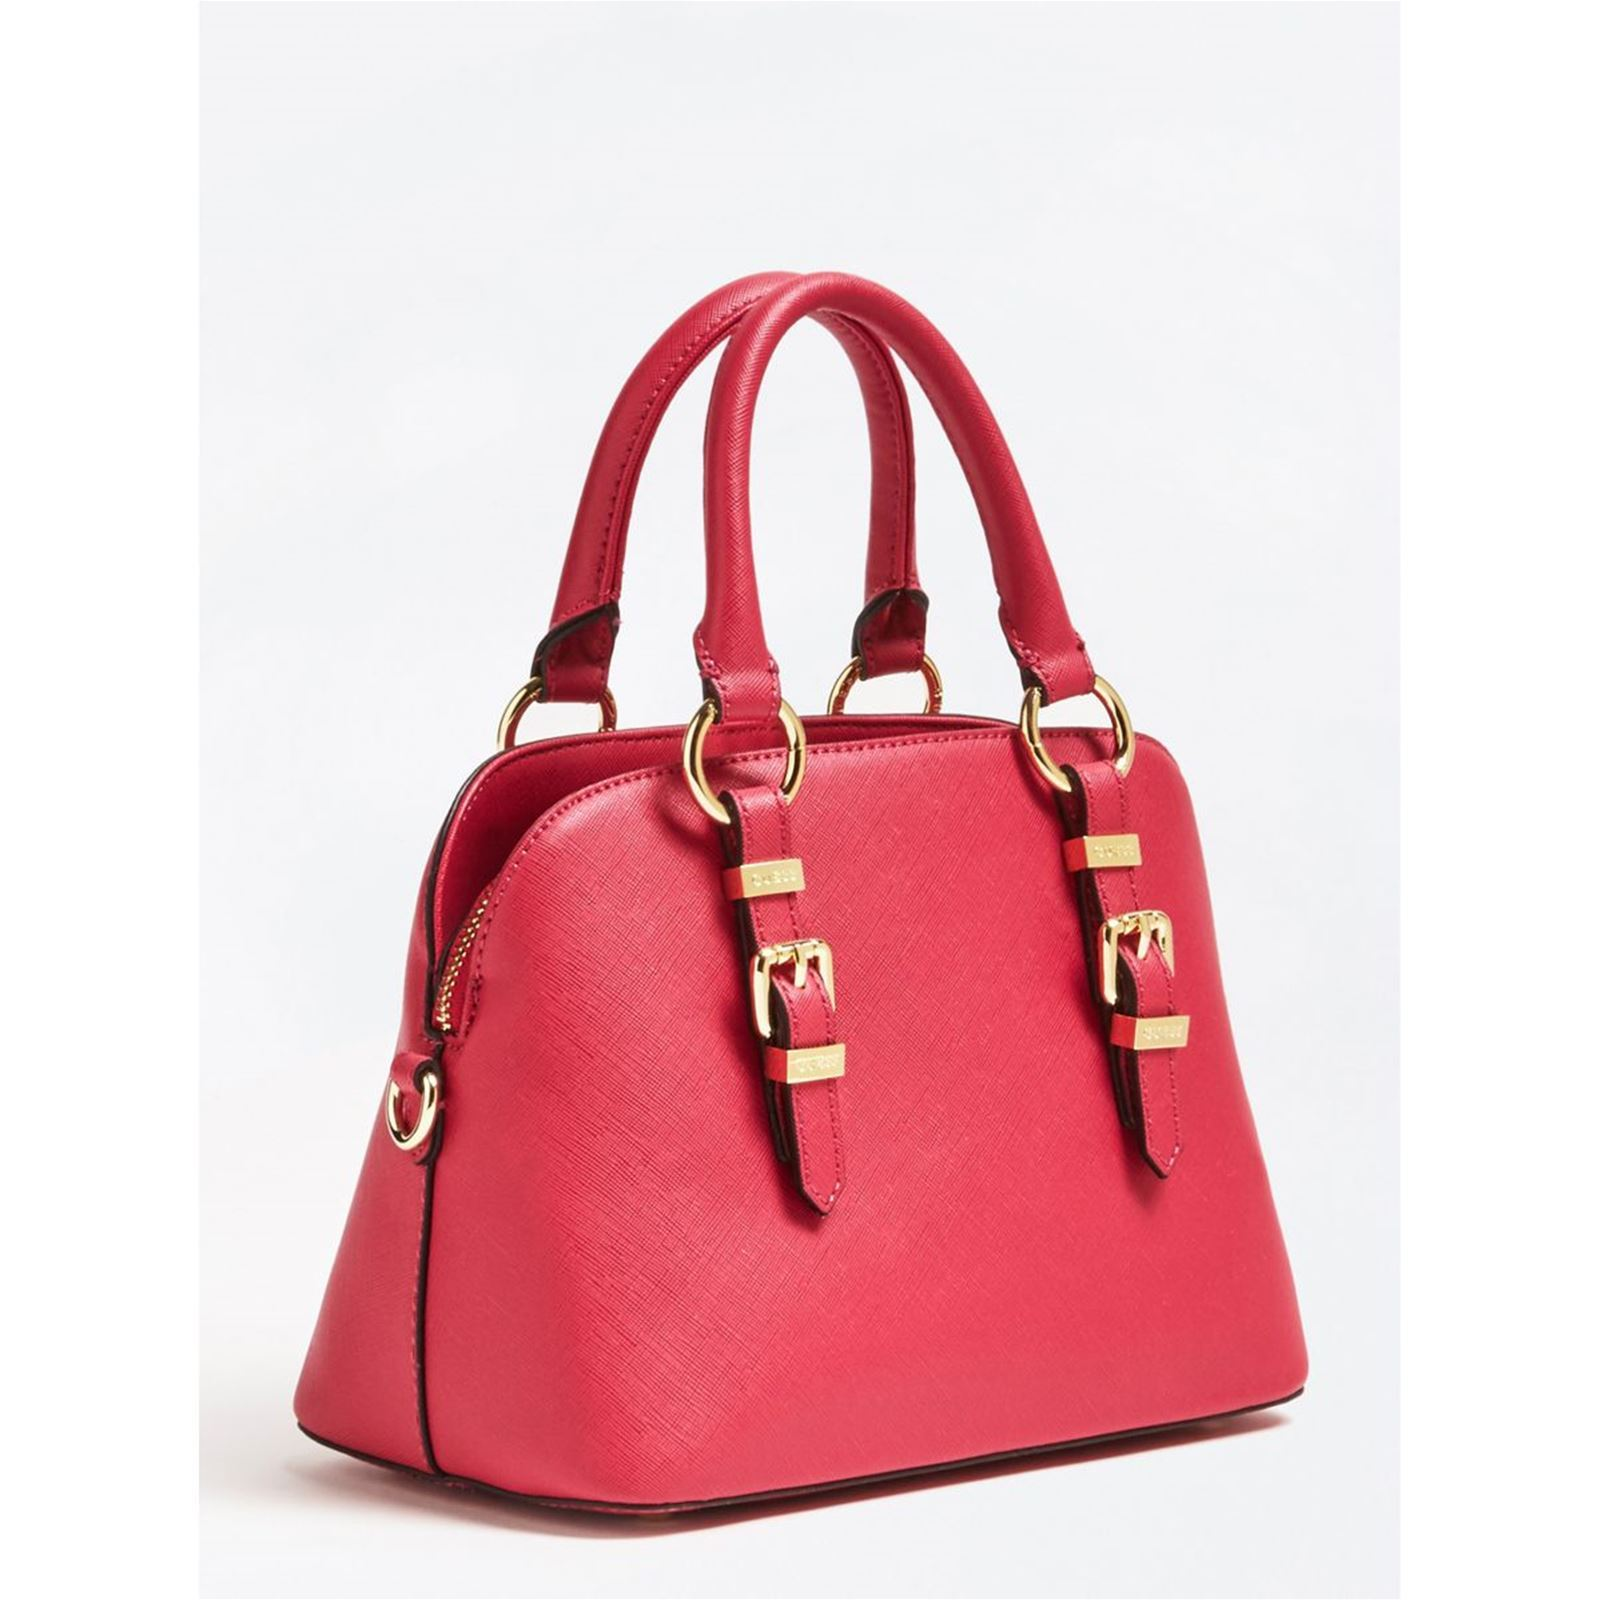 Guess Gracie - Sac à main - rouge   BrandAlley 8ed62dfba8a